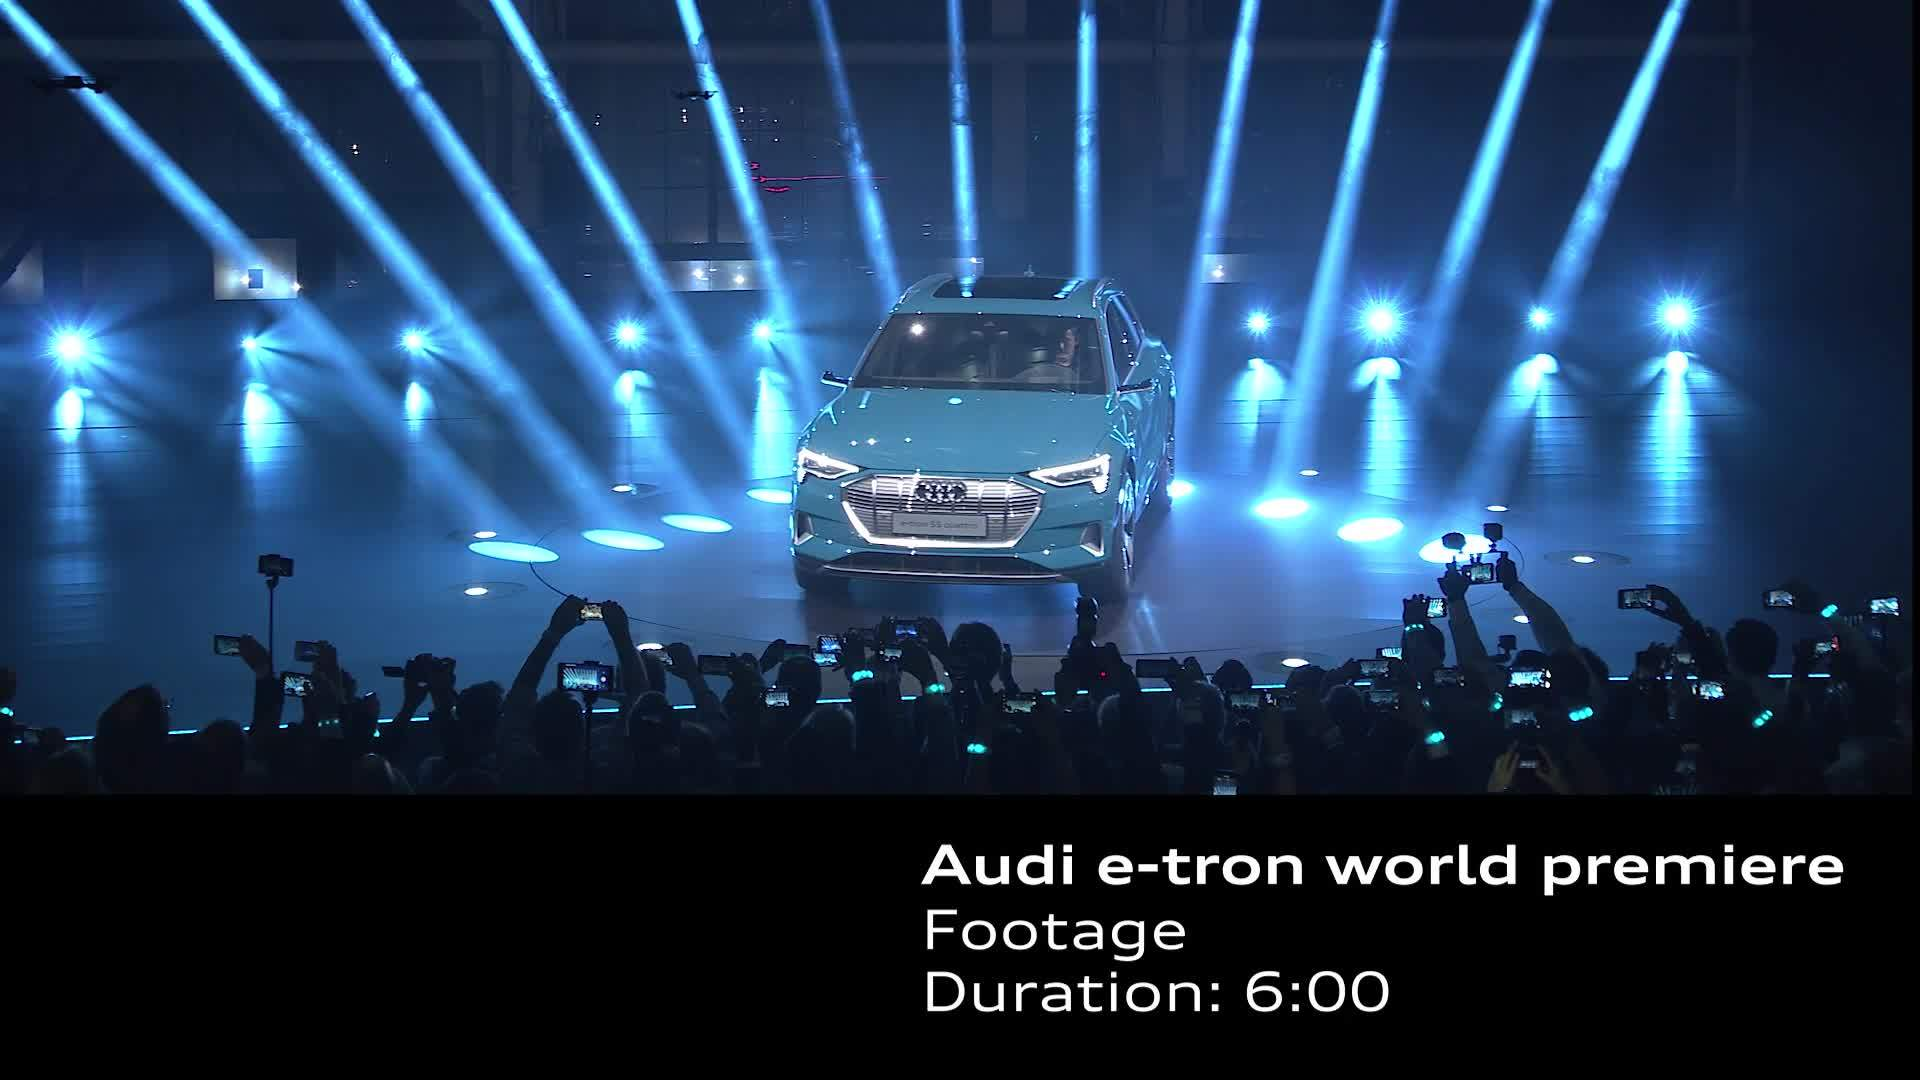 Audi e-tron world premiere footage event and Location